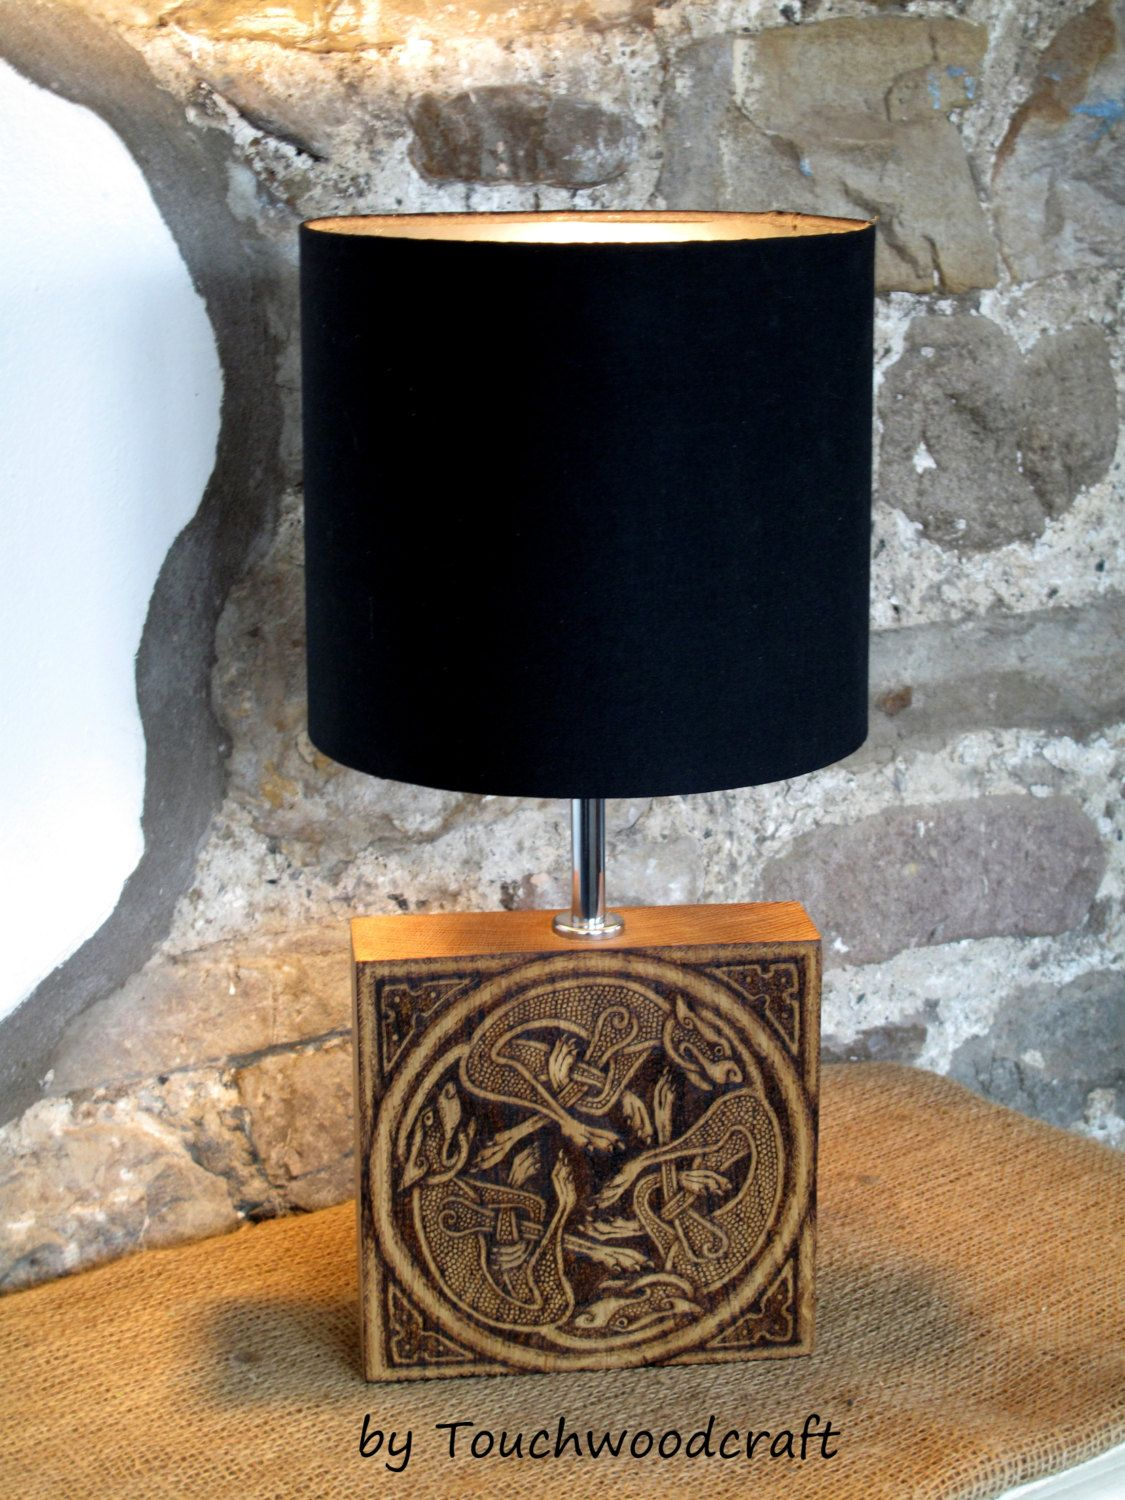 Unique Celtic Table Lamp Base Norse Viking Art Pagan Heathen Train Horn Wiring Diagram Larp Handcrafted Knot Odin Asatru Decor Gift By Touchwoodcraft